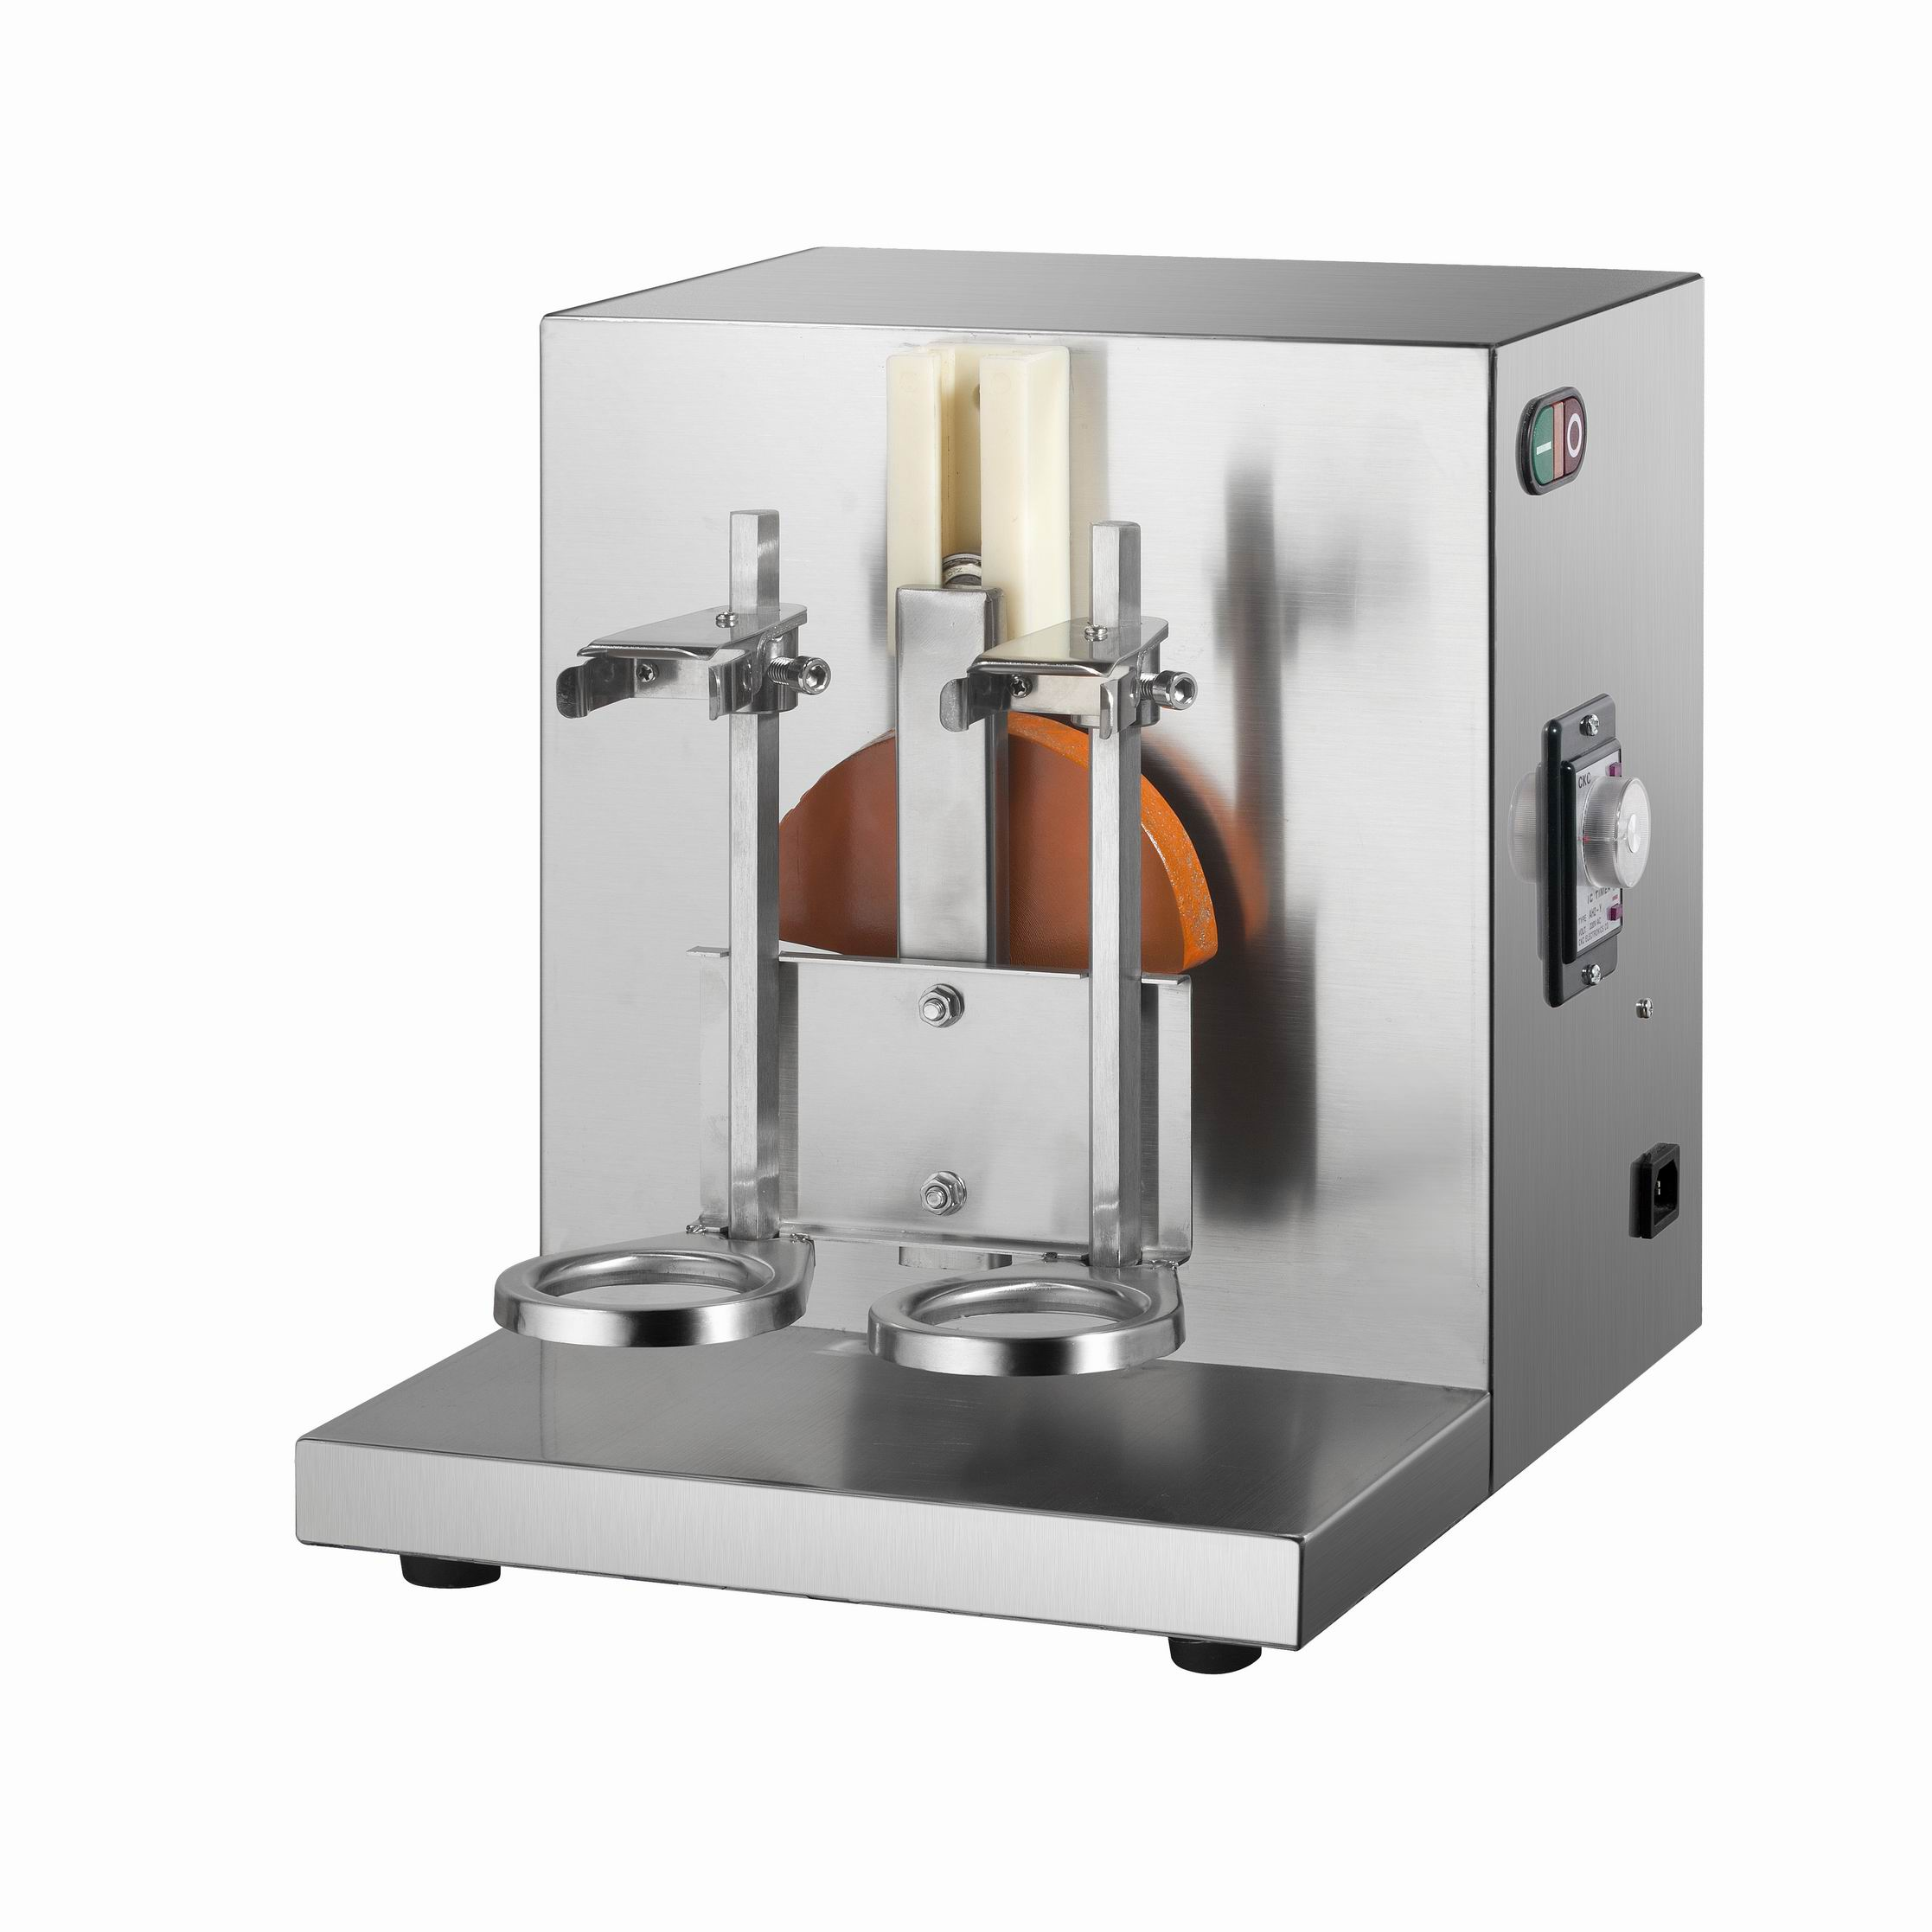 Shaking machine for bubble boba tea